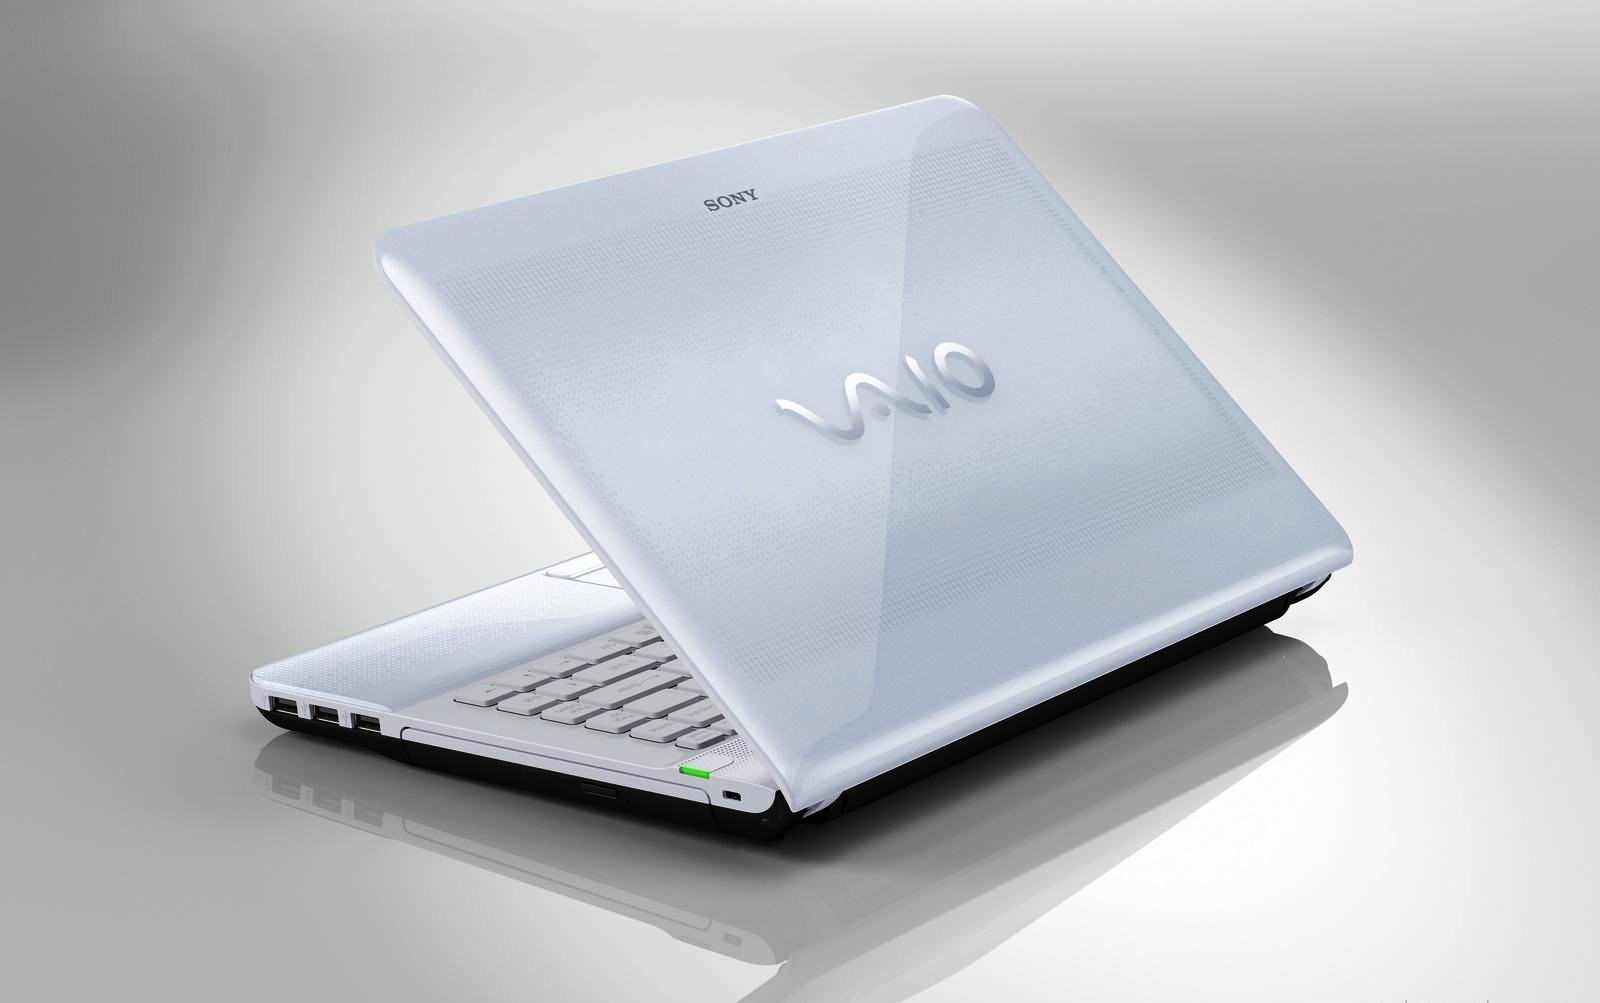 Sony Vaio, a nice machine